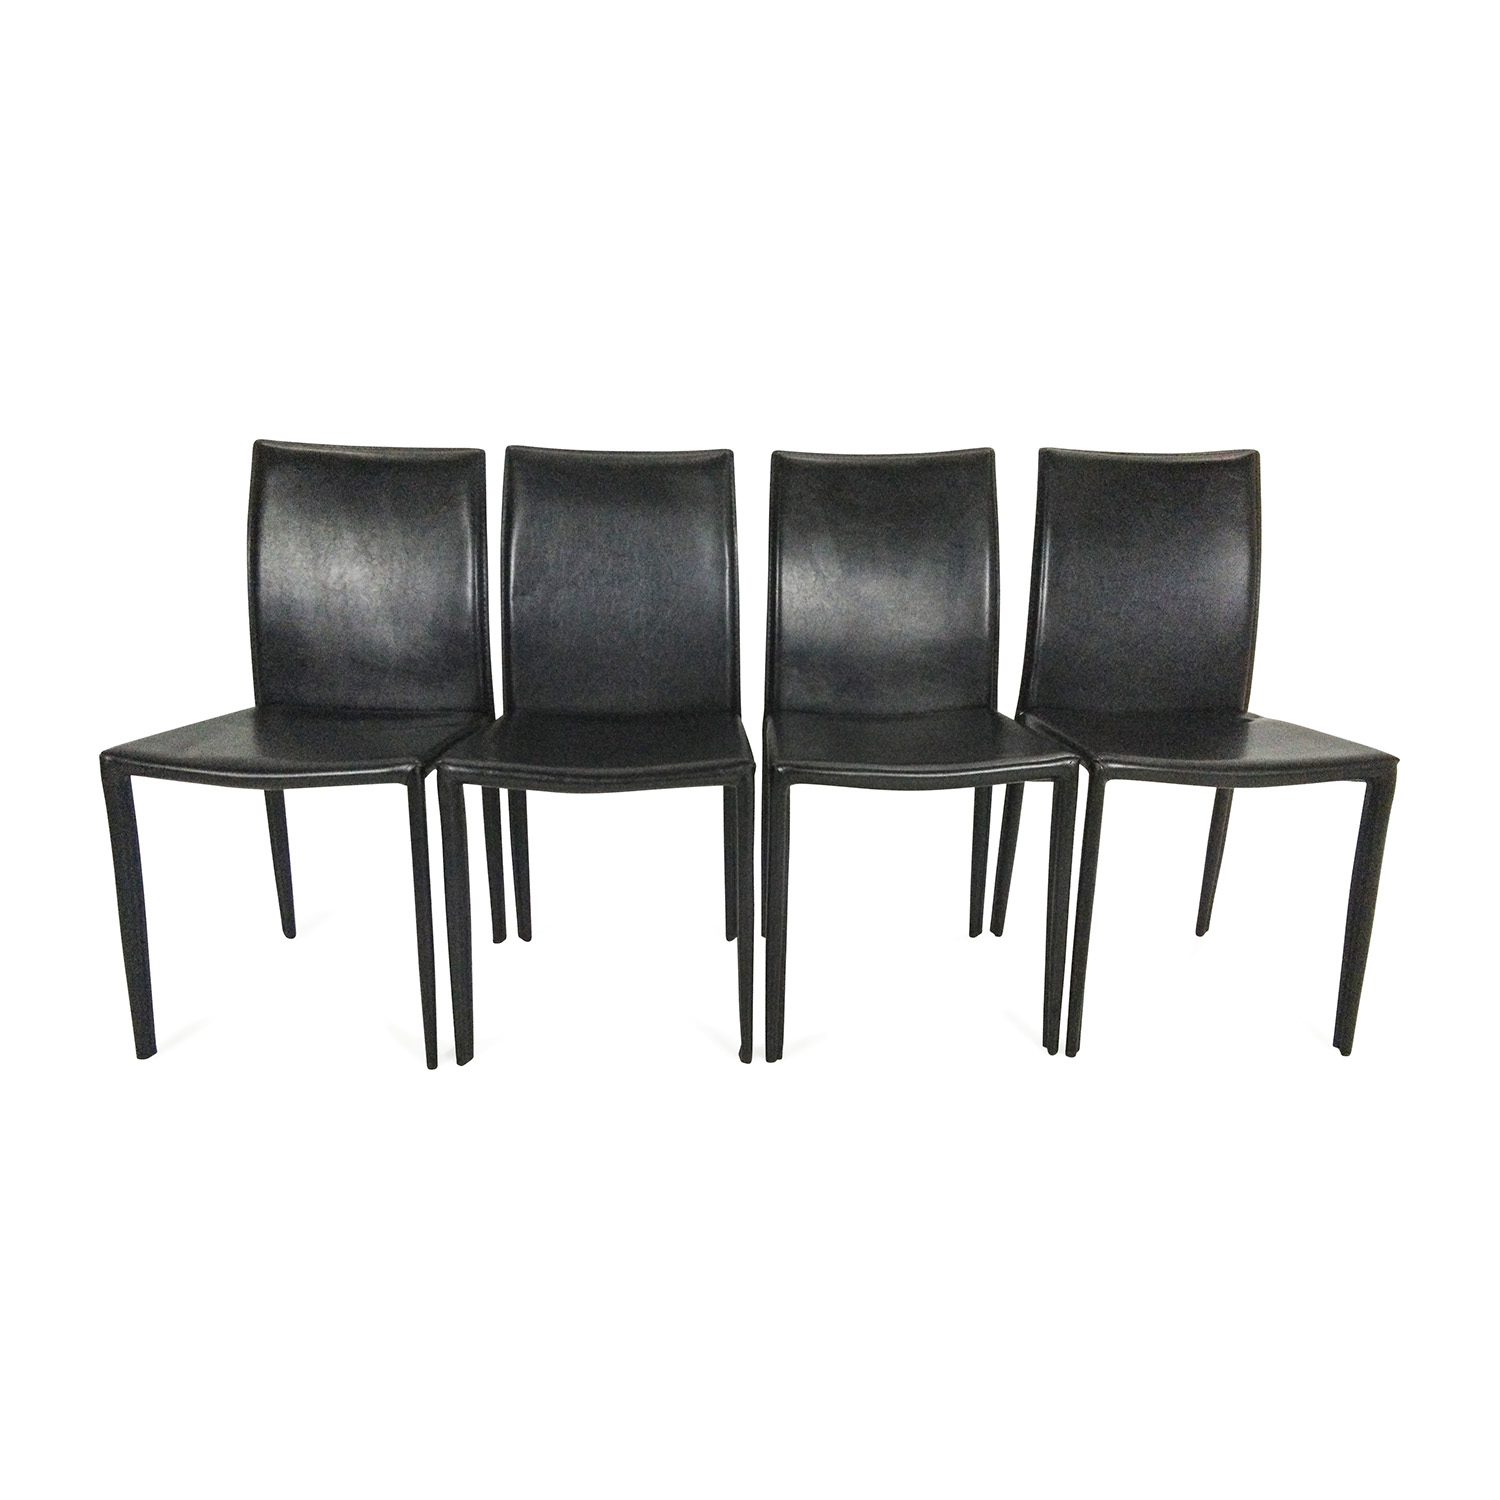 4 Black Faux Leather Chairs nj